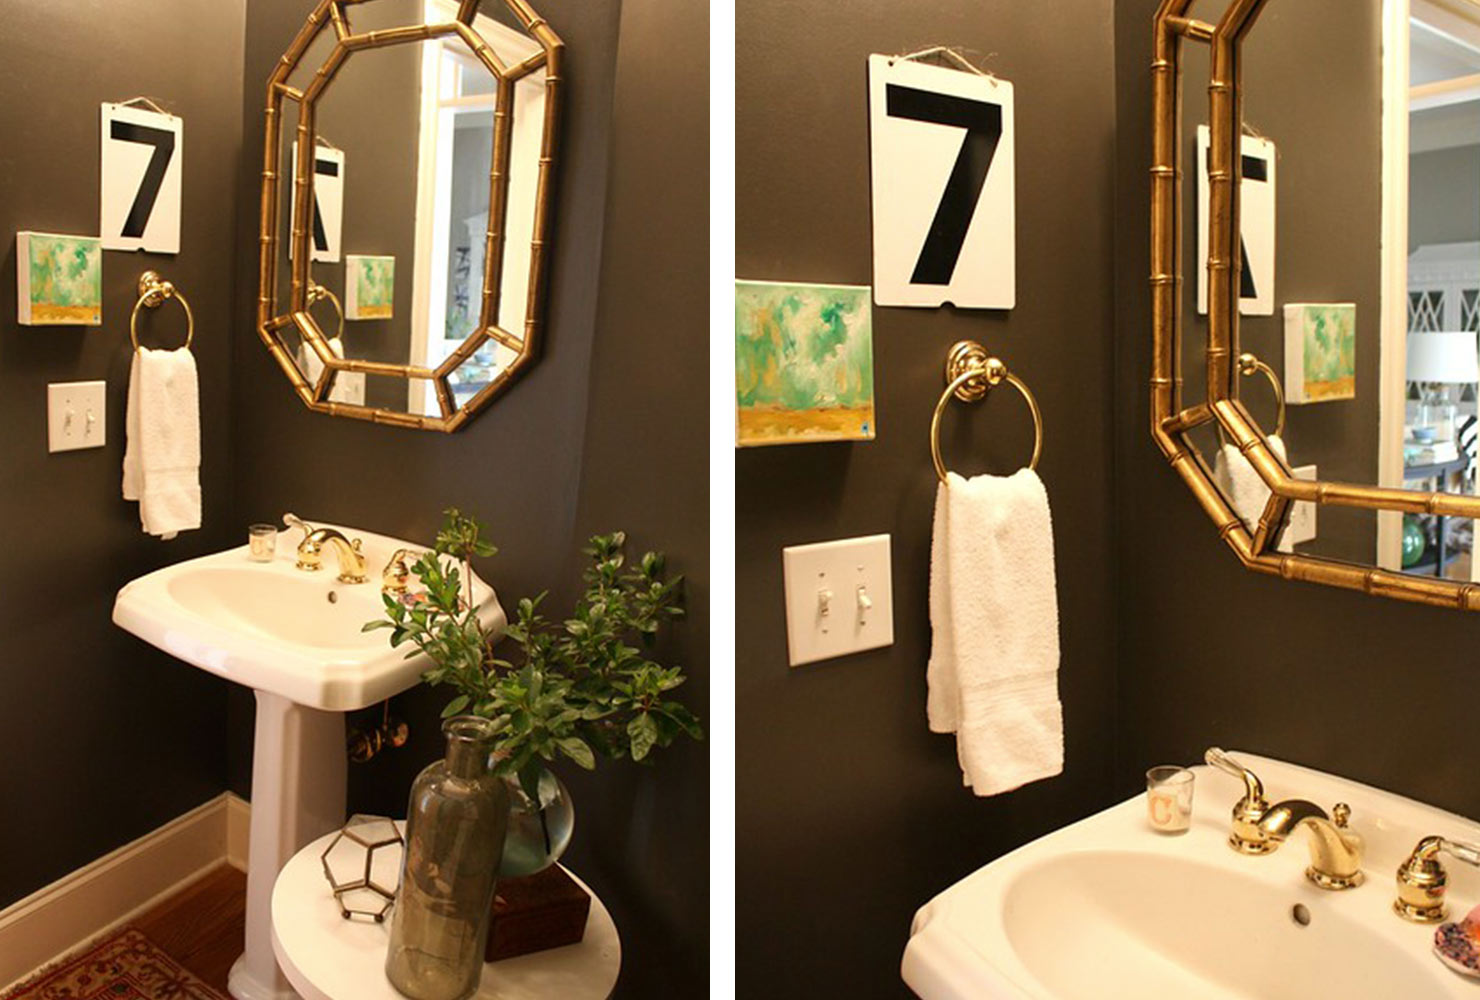 Bathroom Decoration Idea by Emily A Clark - Shutterfly